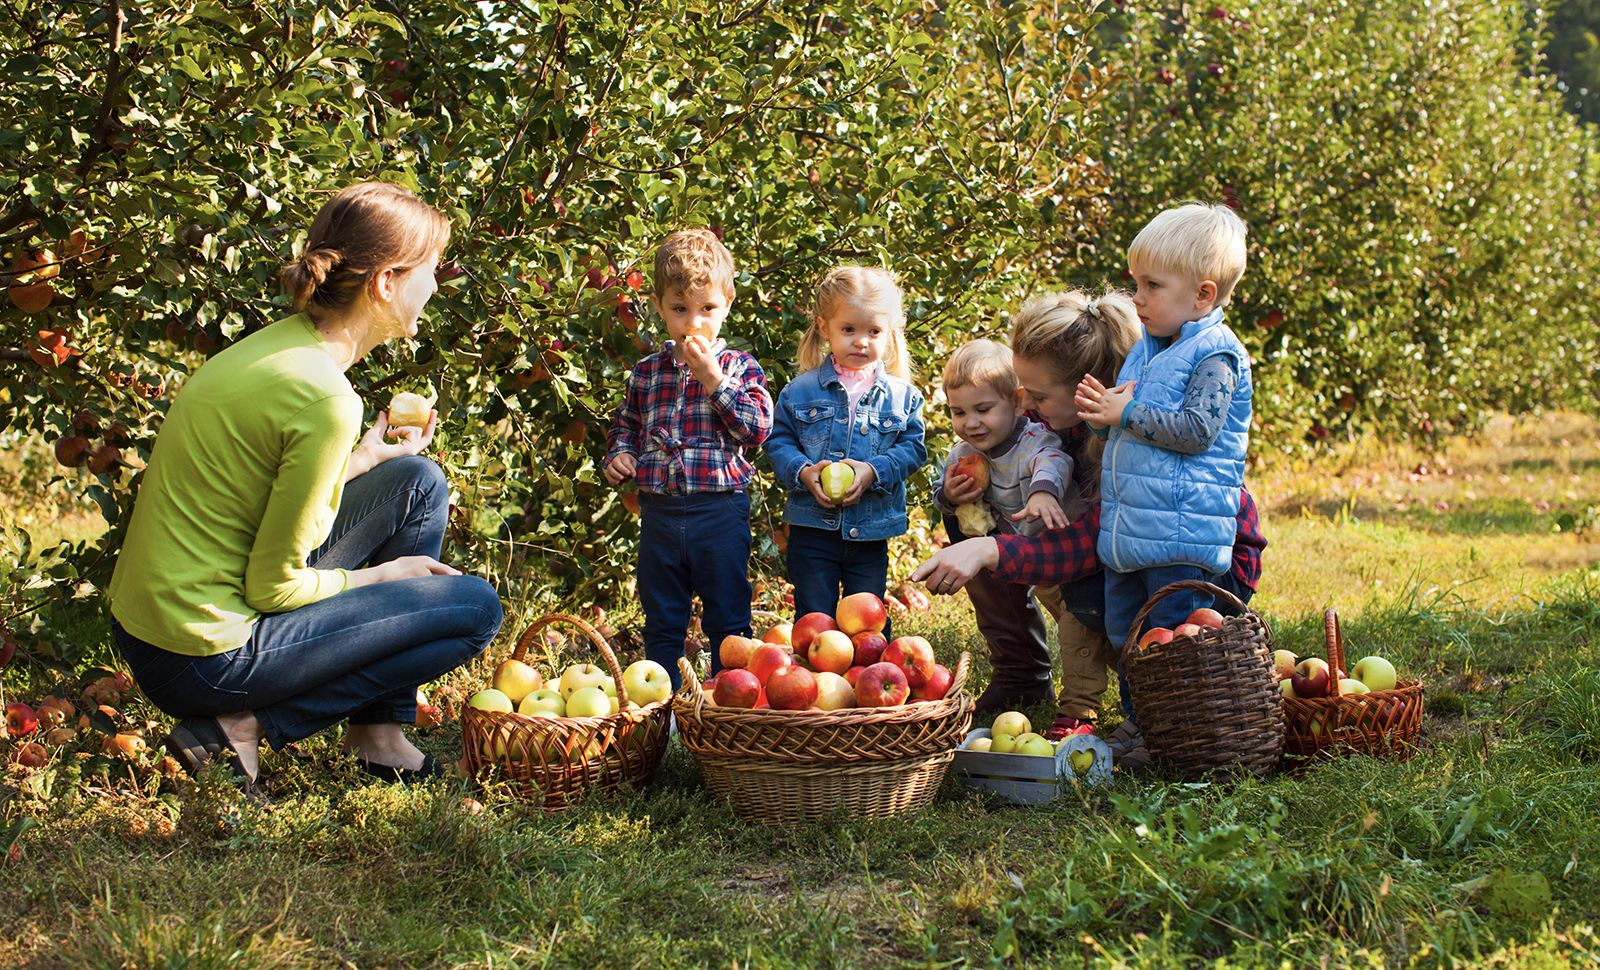 The Best Apple Picking On Long Island